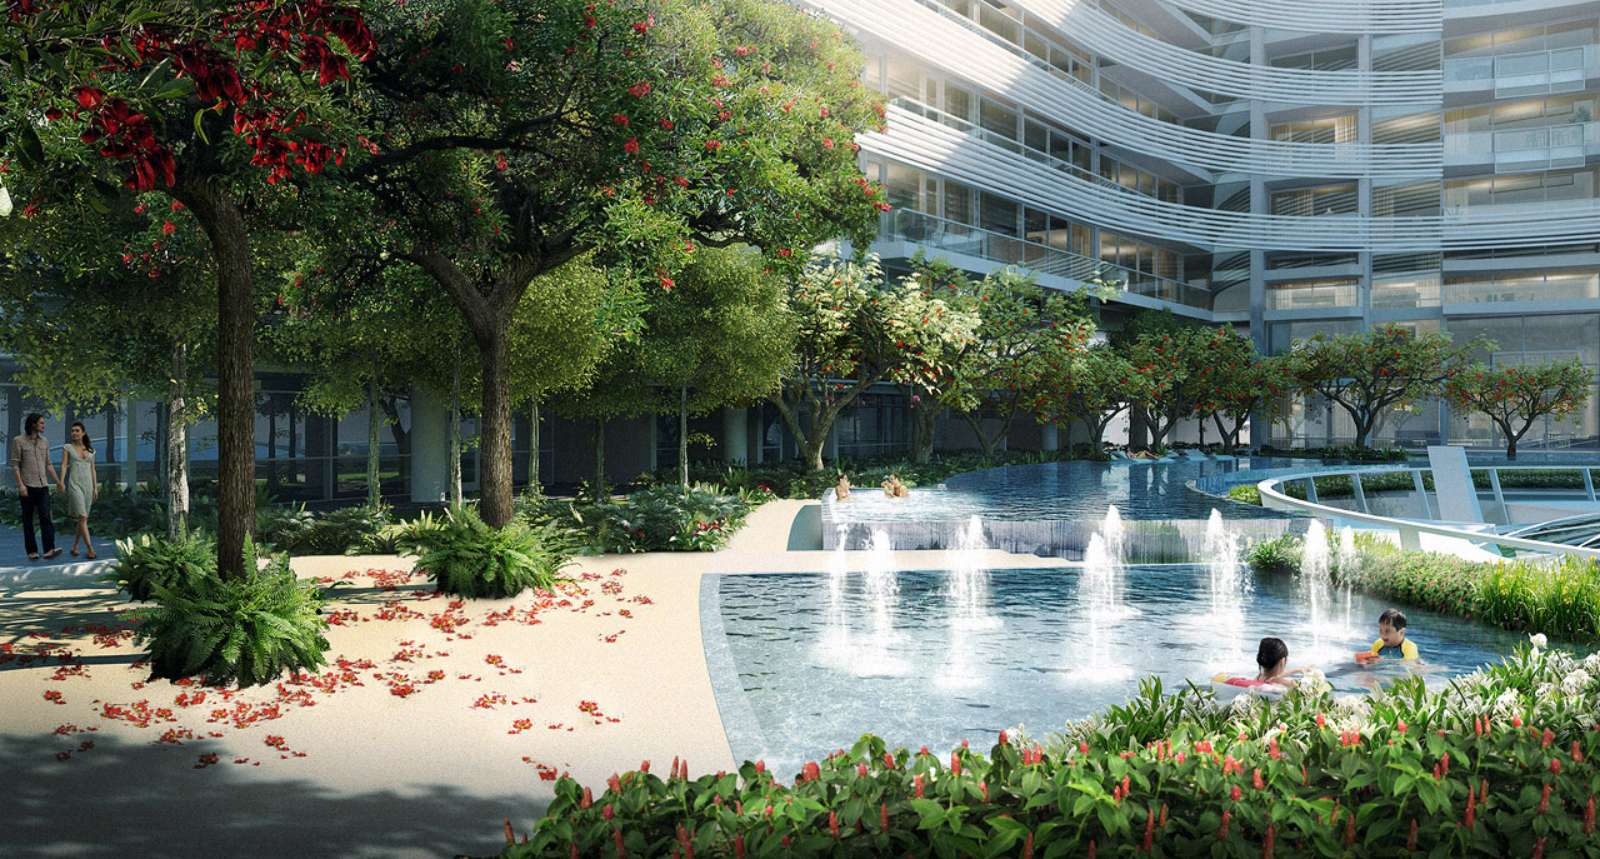 New Landscape Design For Capitol Singapore By Grant